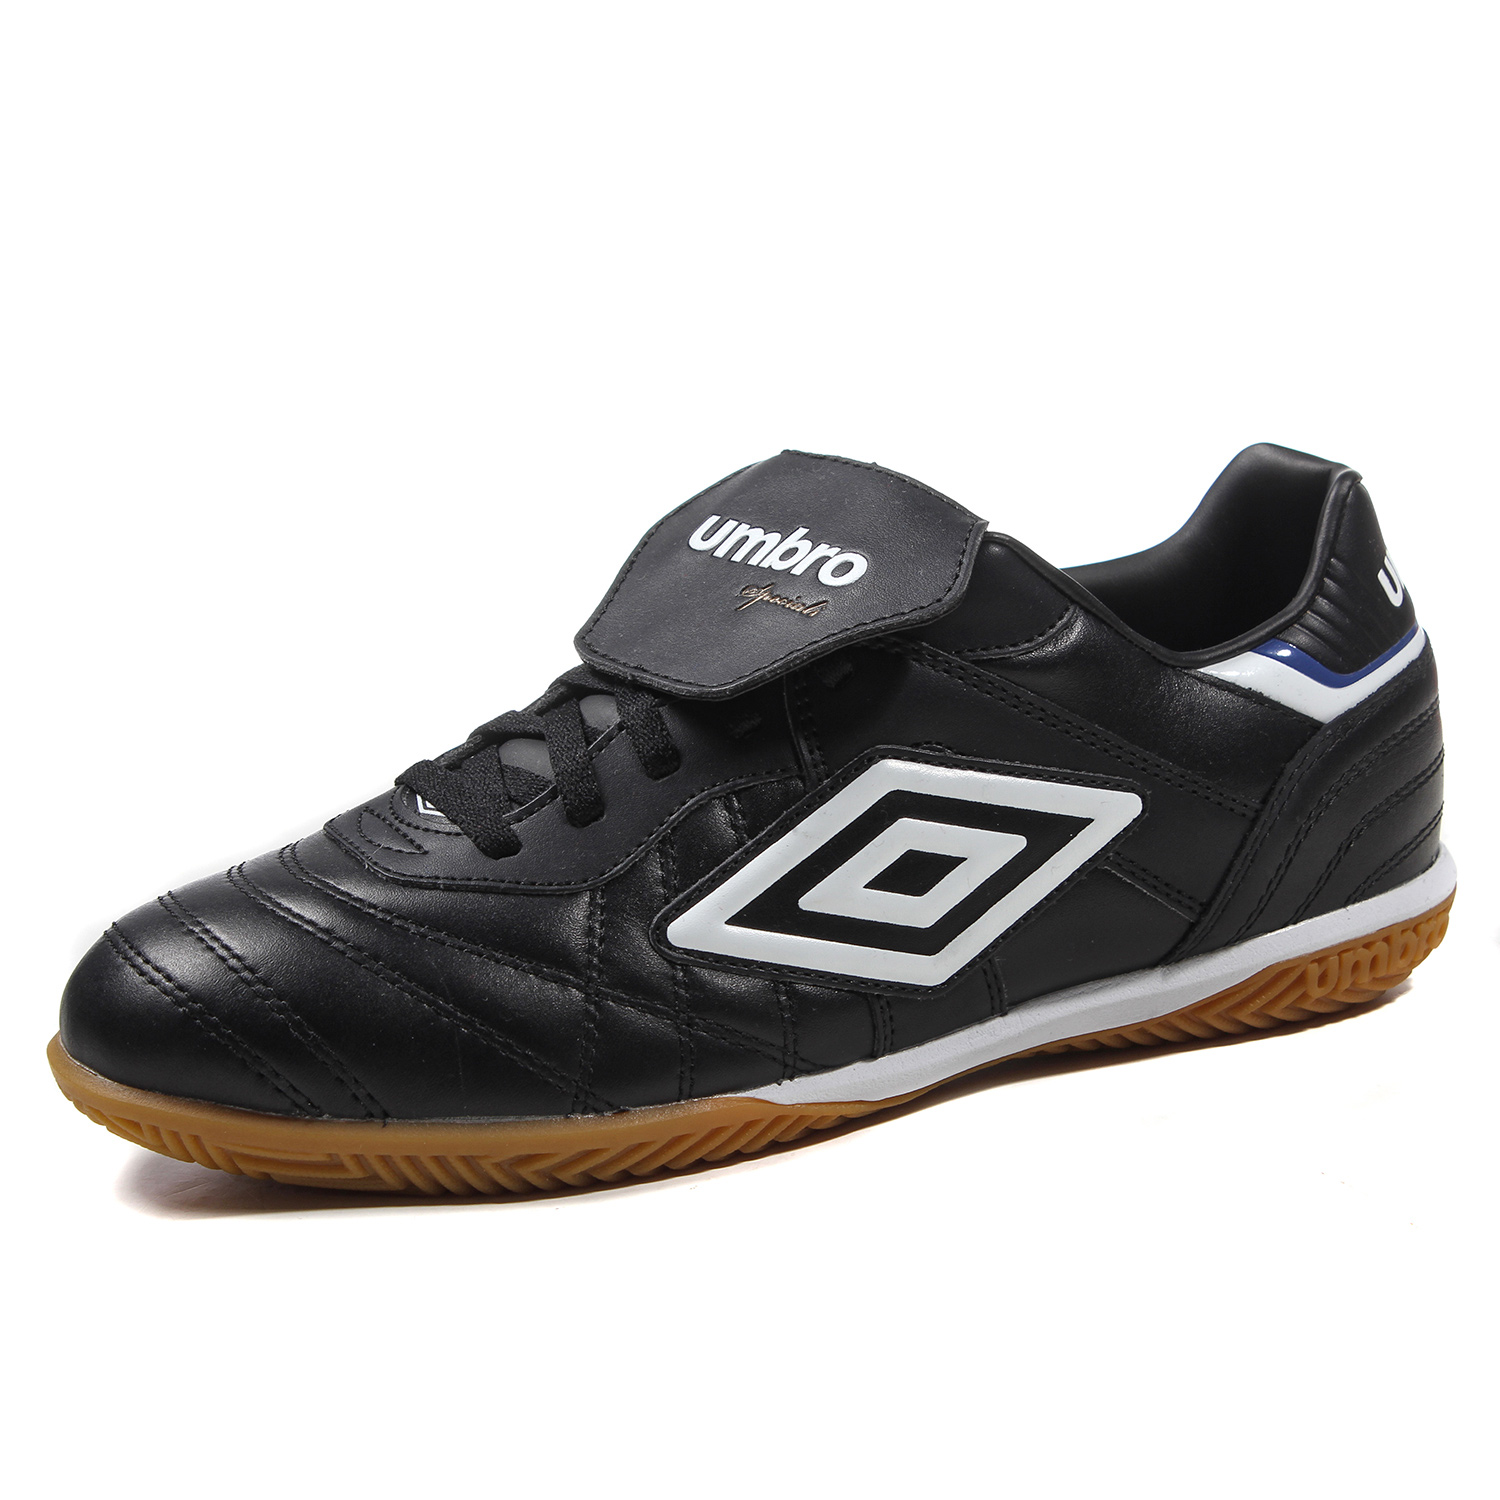 Umbro Men Soccer Shoes Sports Sneaker Indoor Soccer Boots Turf Shoes  Leather Lace up Professional Football Shoes UCB90115-in Soccer Shoes from  Sports ... a1a2cd2c6a